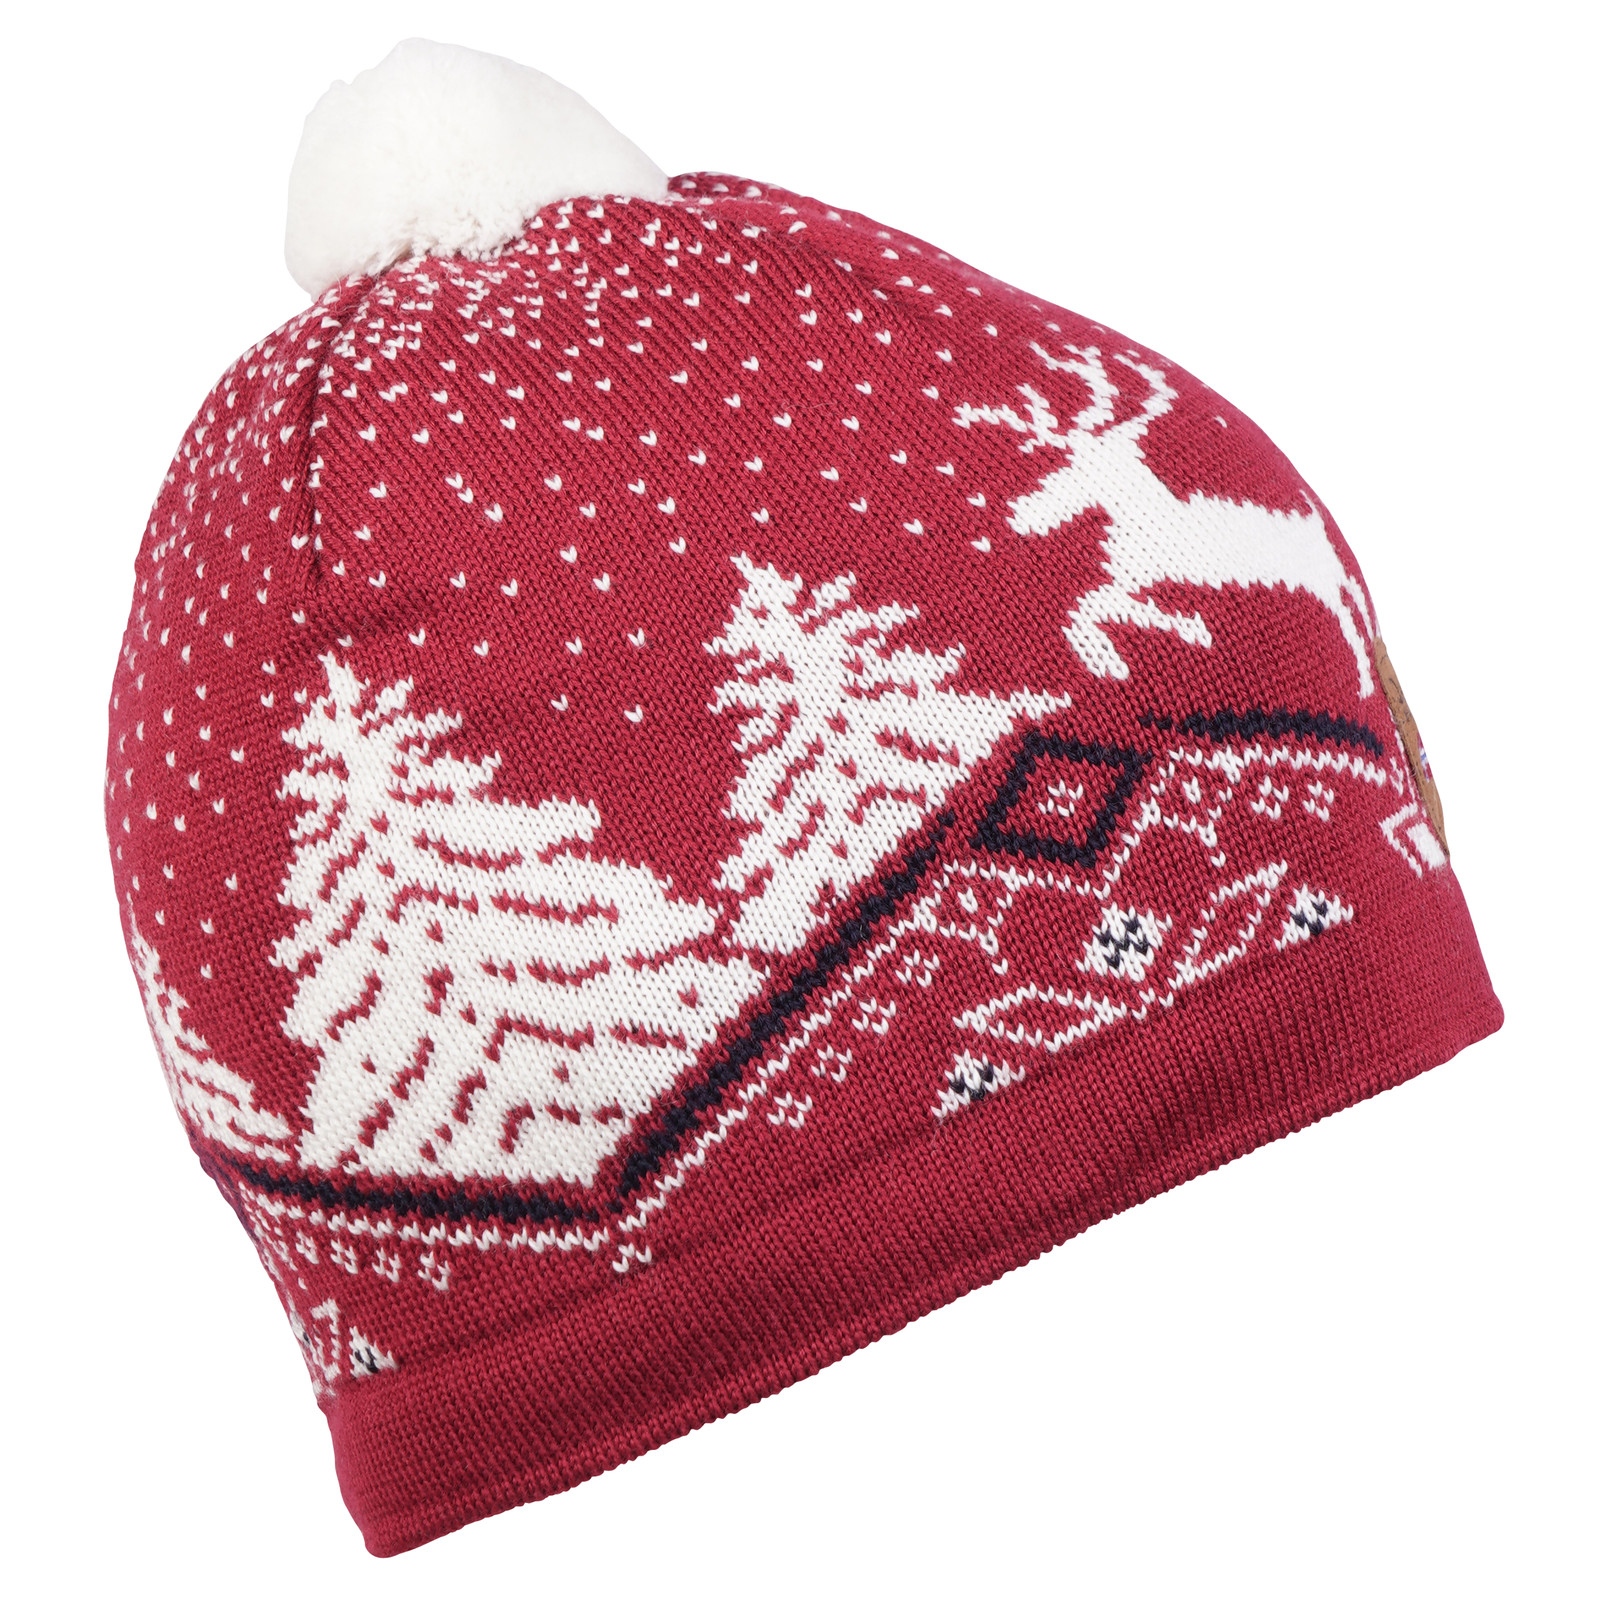 Dale of Norway Christmas Hat - Raspberry/Off White/Navy 48291-B